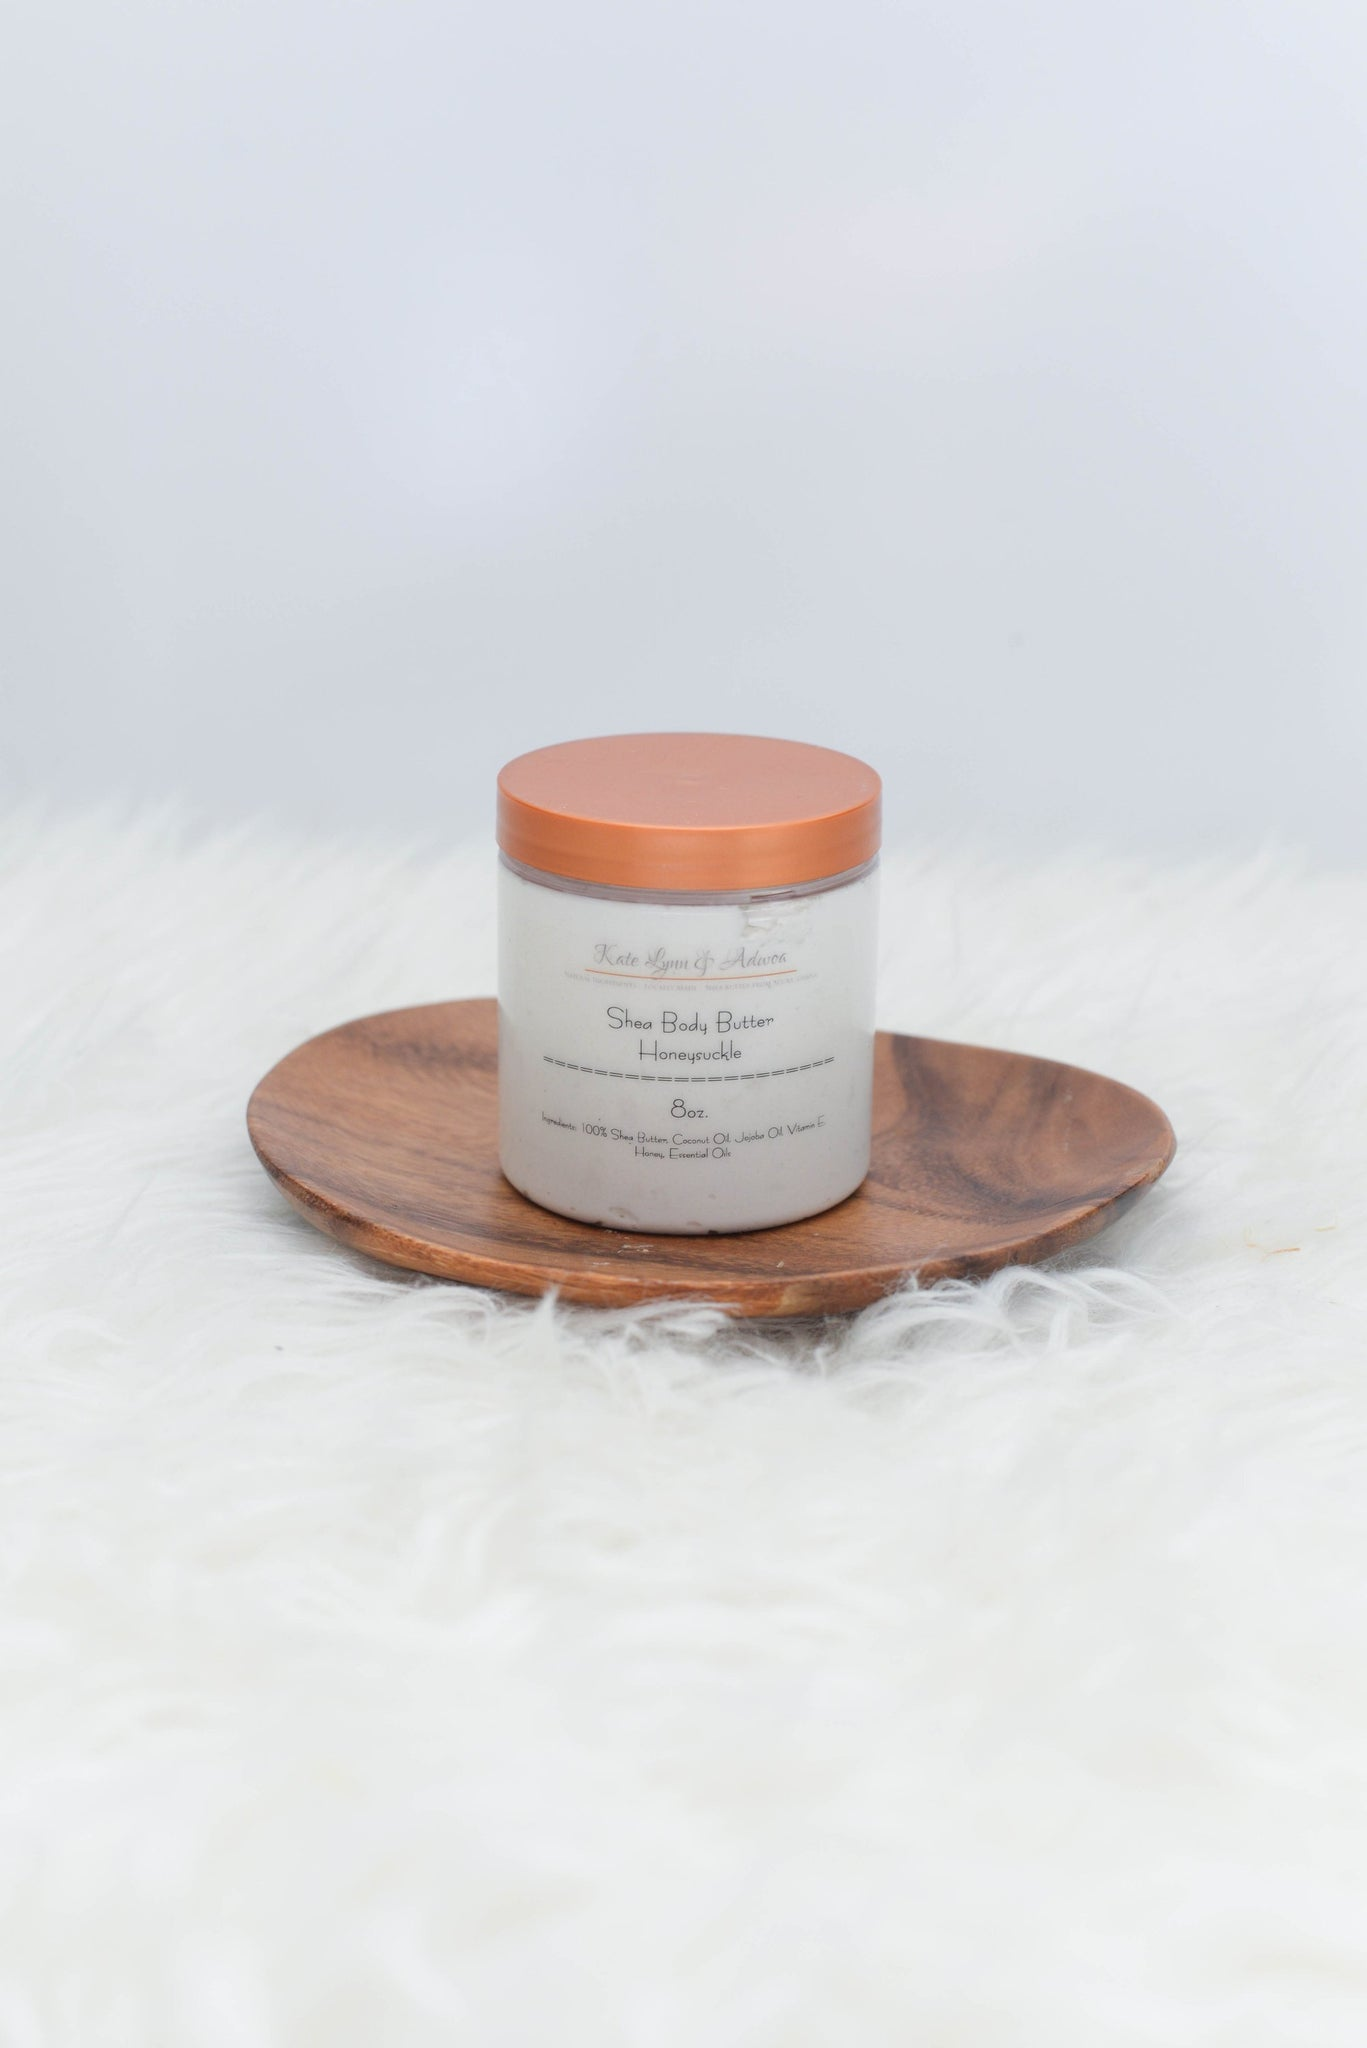 Kate Lynn & Adwoa Body Butter